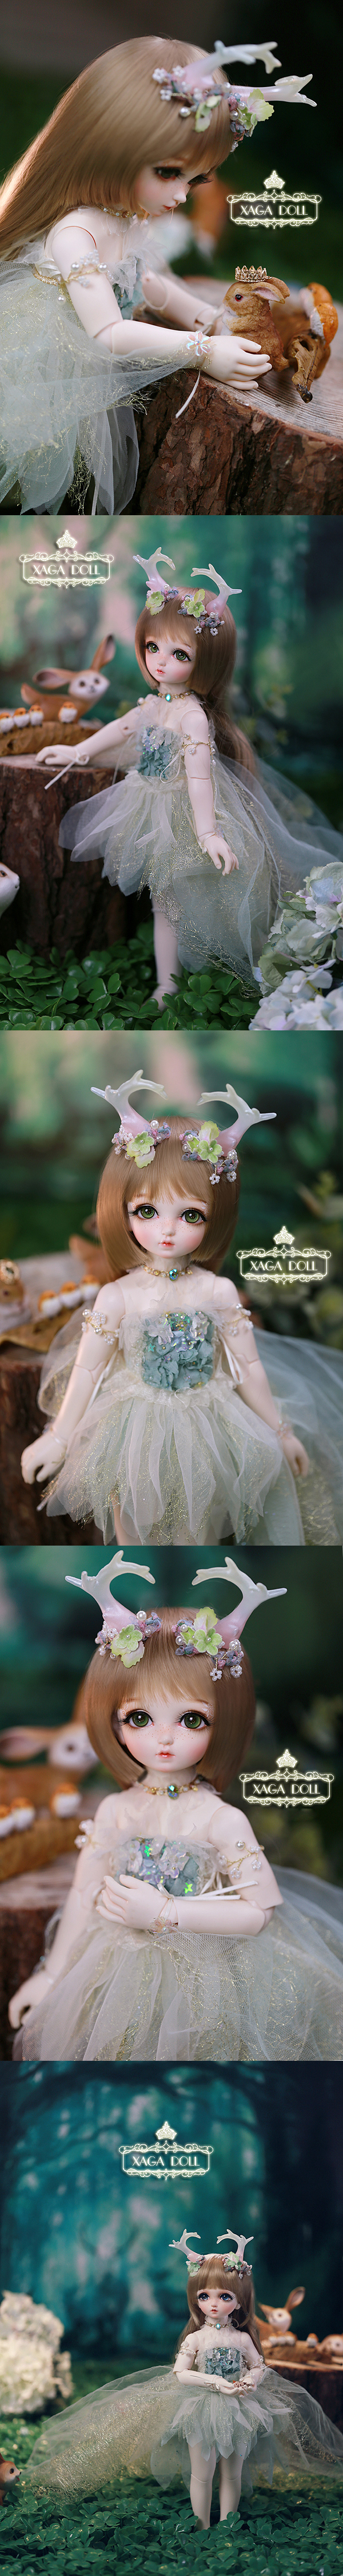 Limited Time DSD Super Baby Deedlite 37cm Ball-Jointed